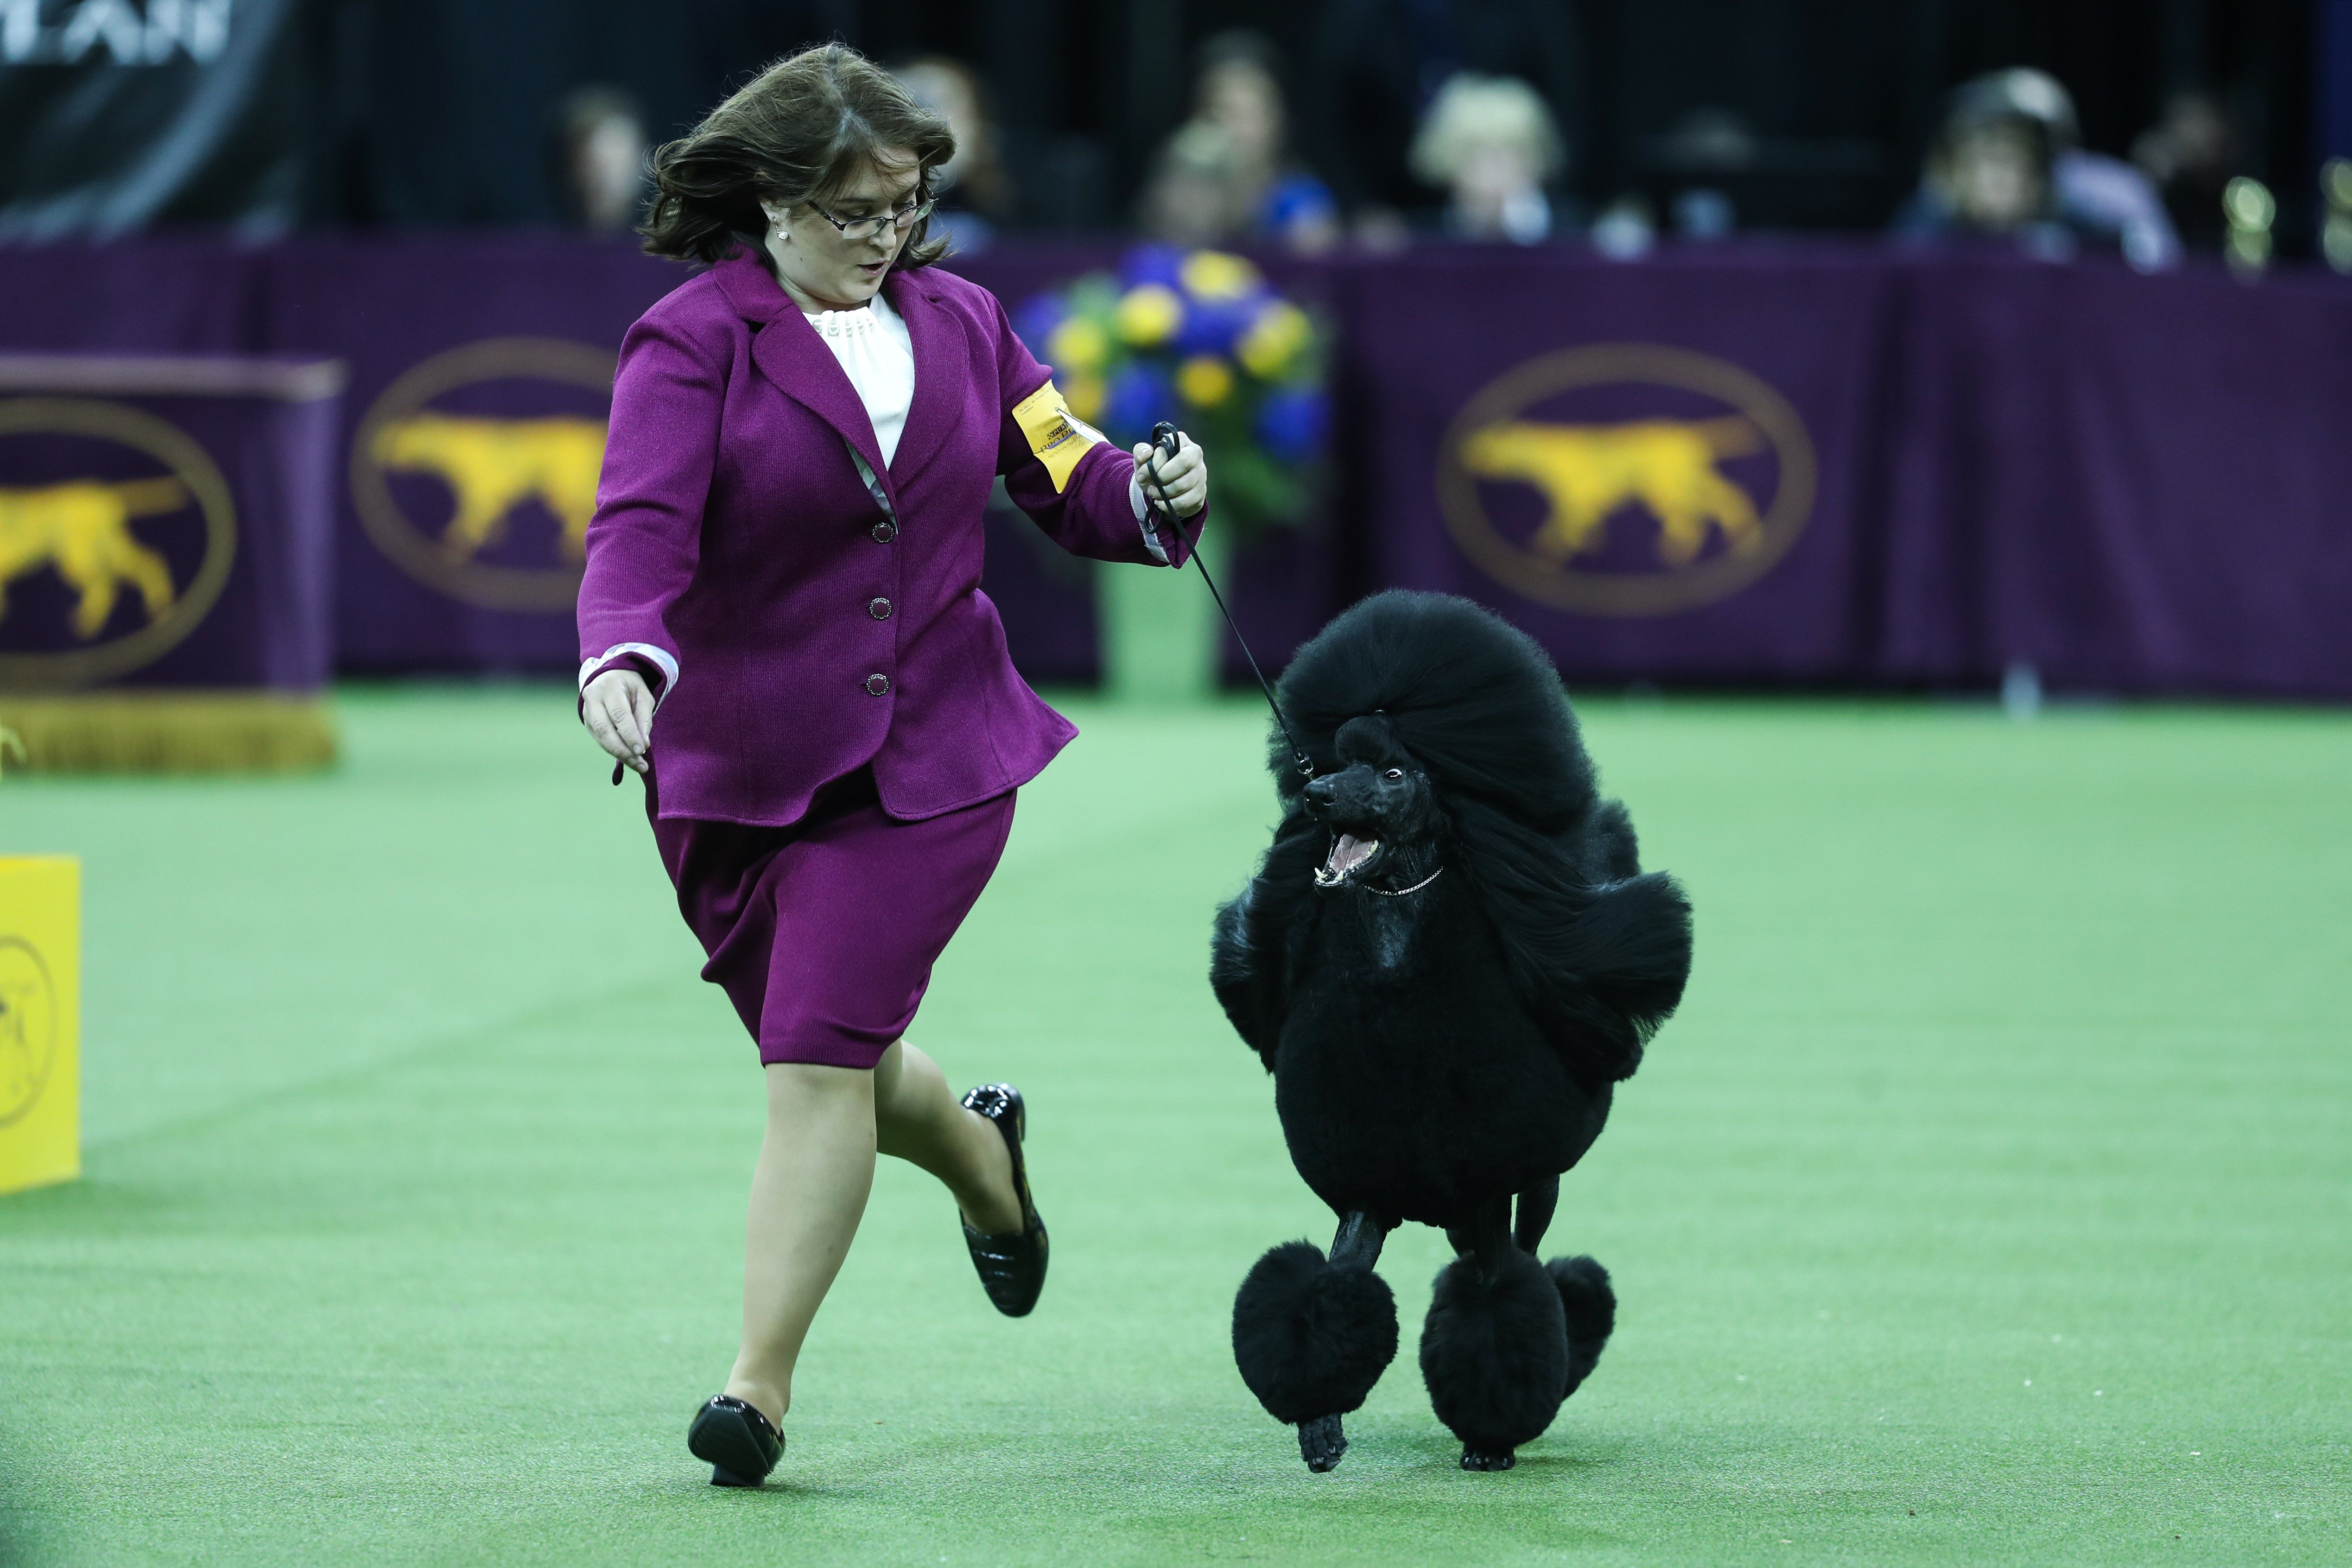 A dog running behind its owner